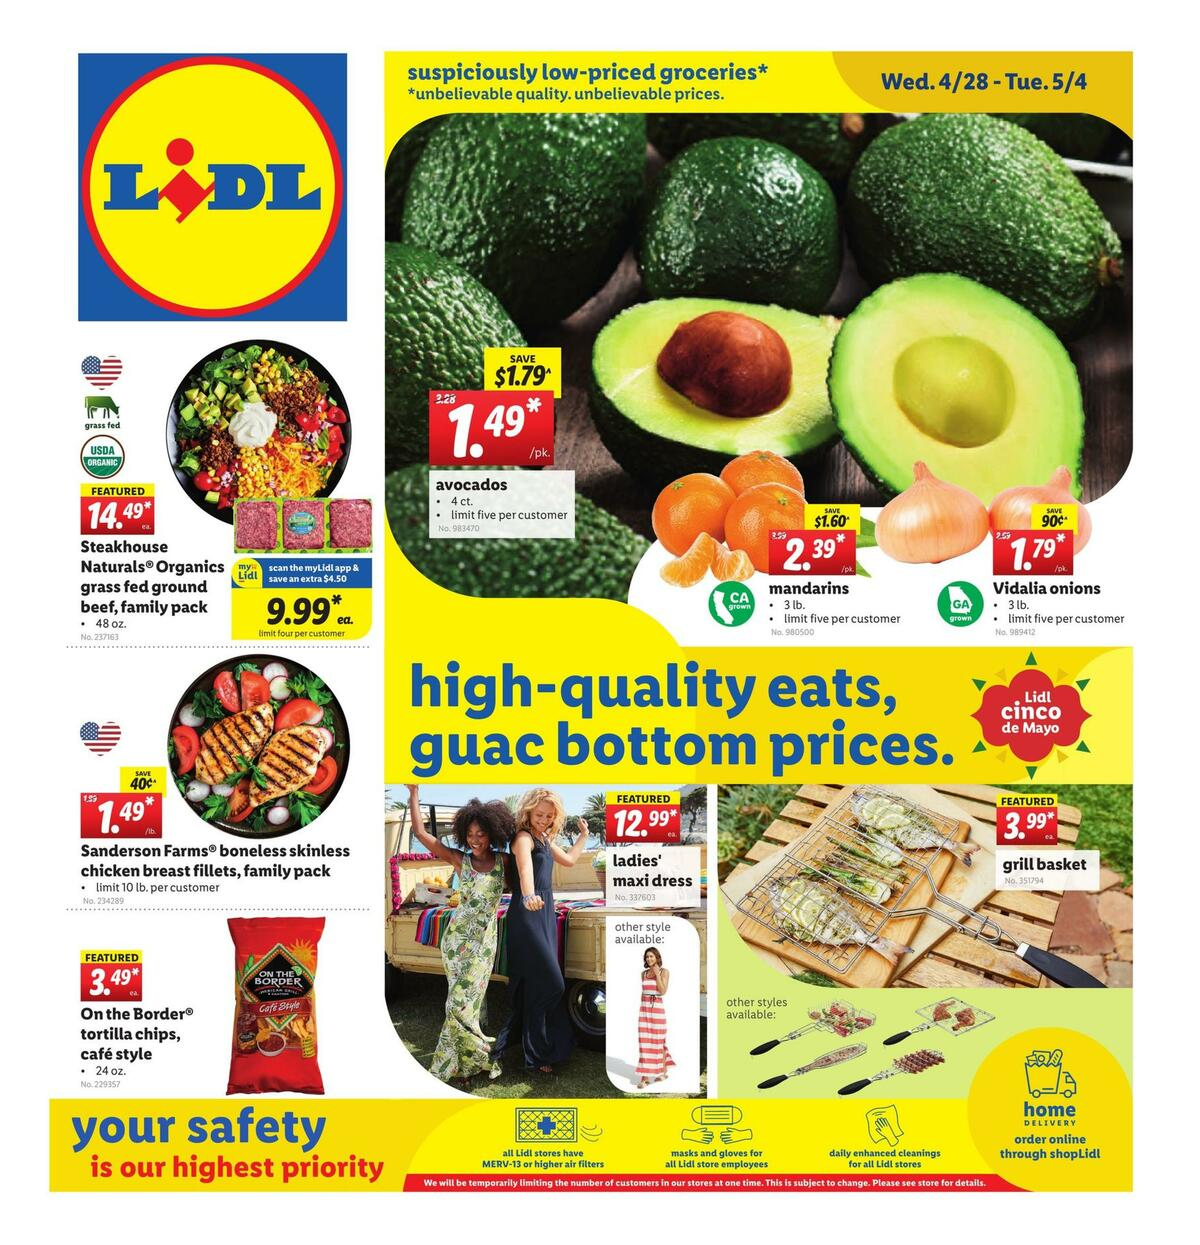 LIDL Weekly Ad from April 28